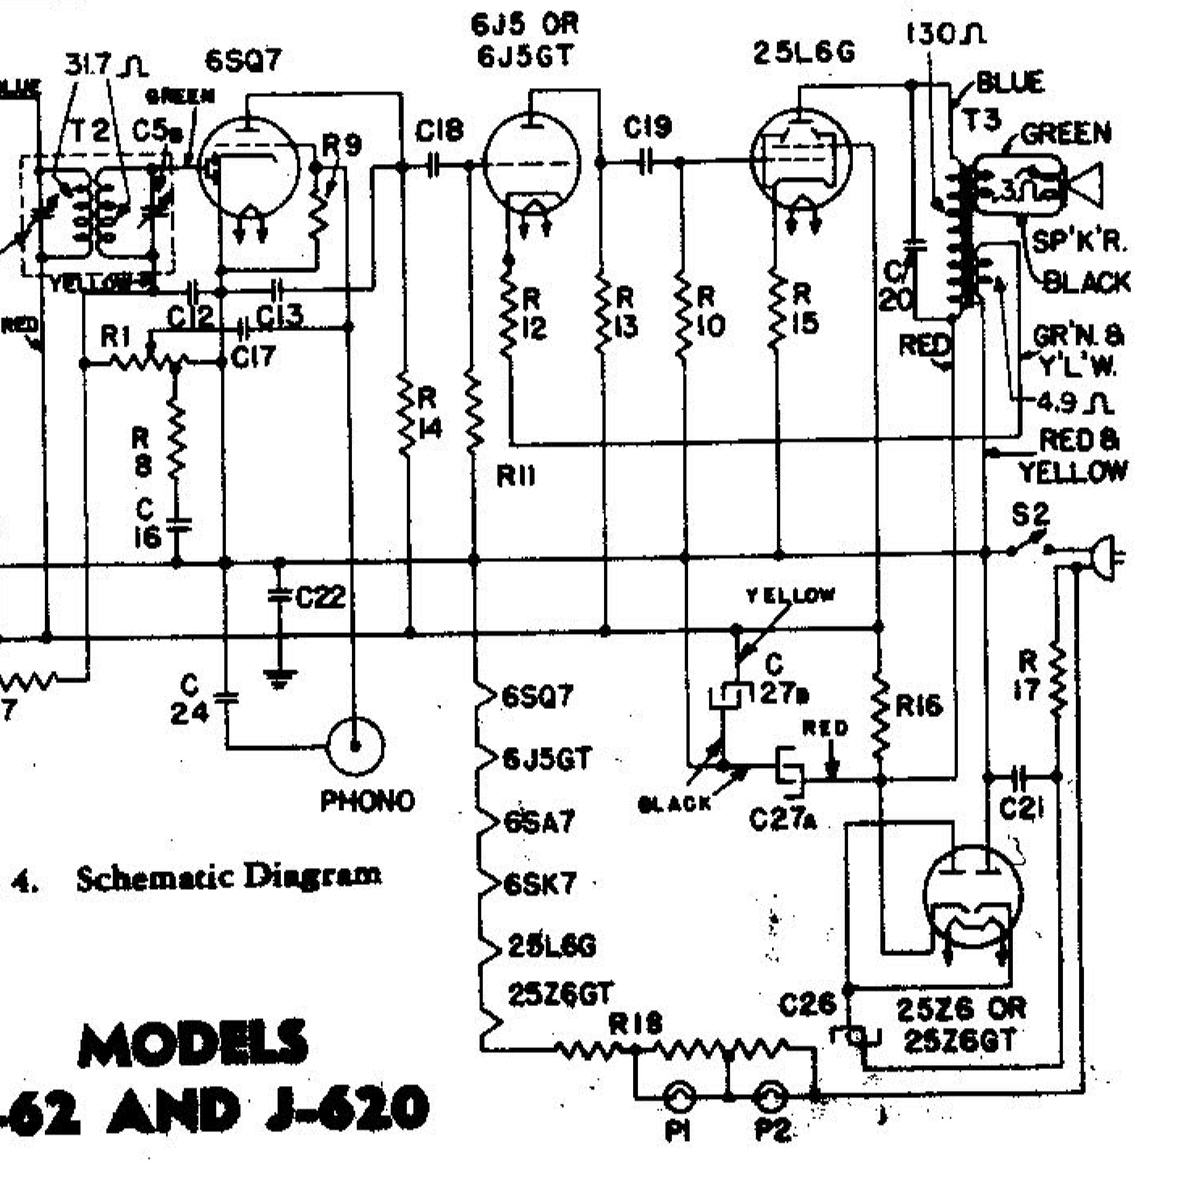 Mail Aramitedu If You Need A Copy Of This Schematic